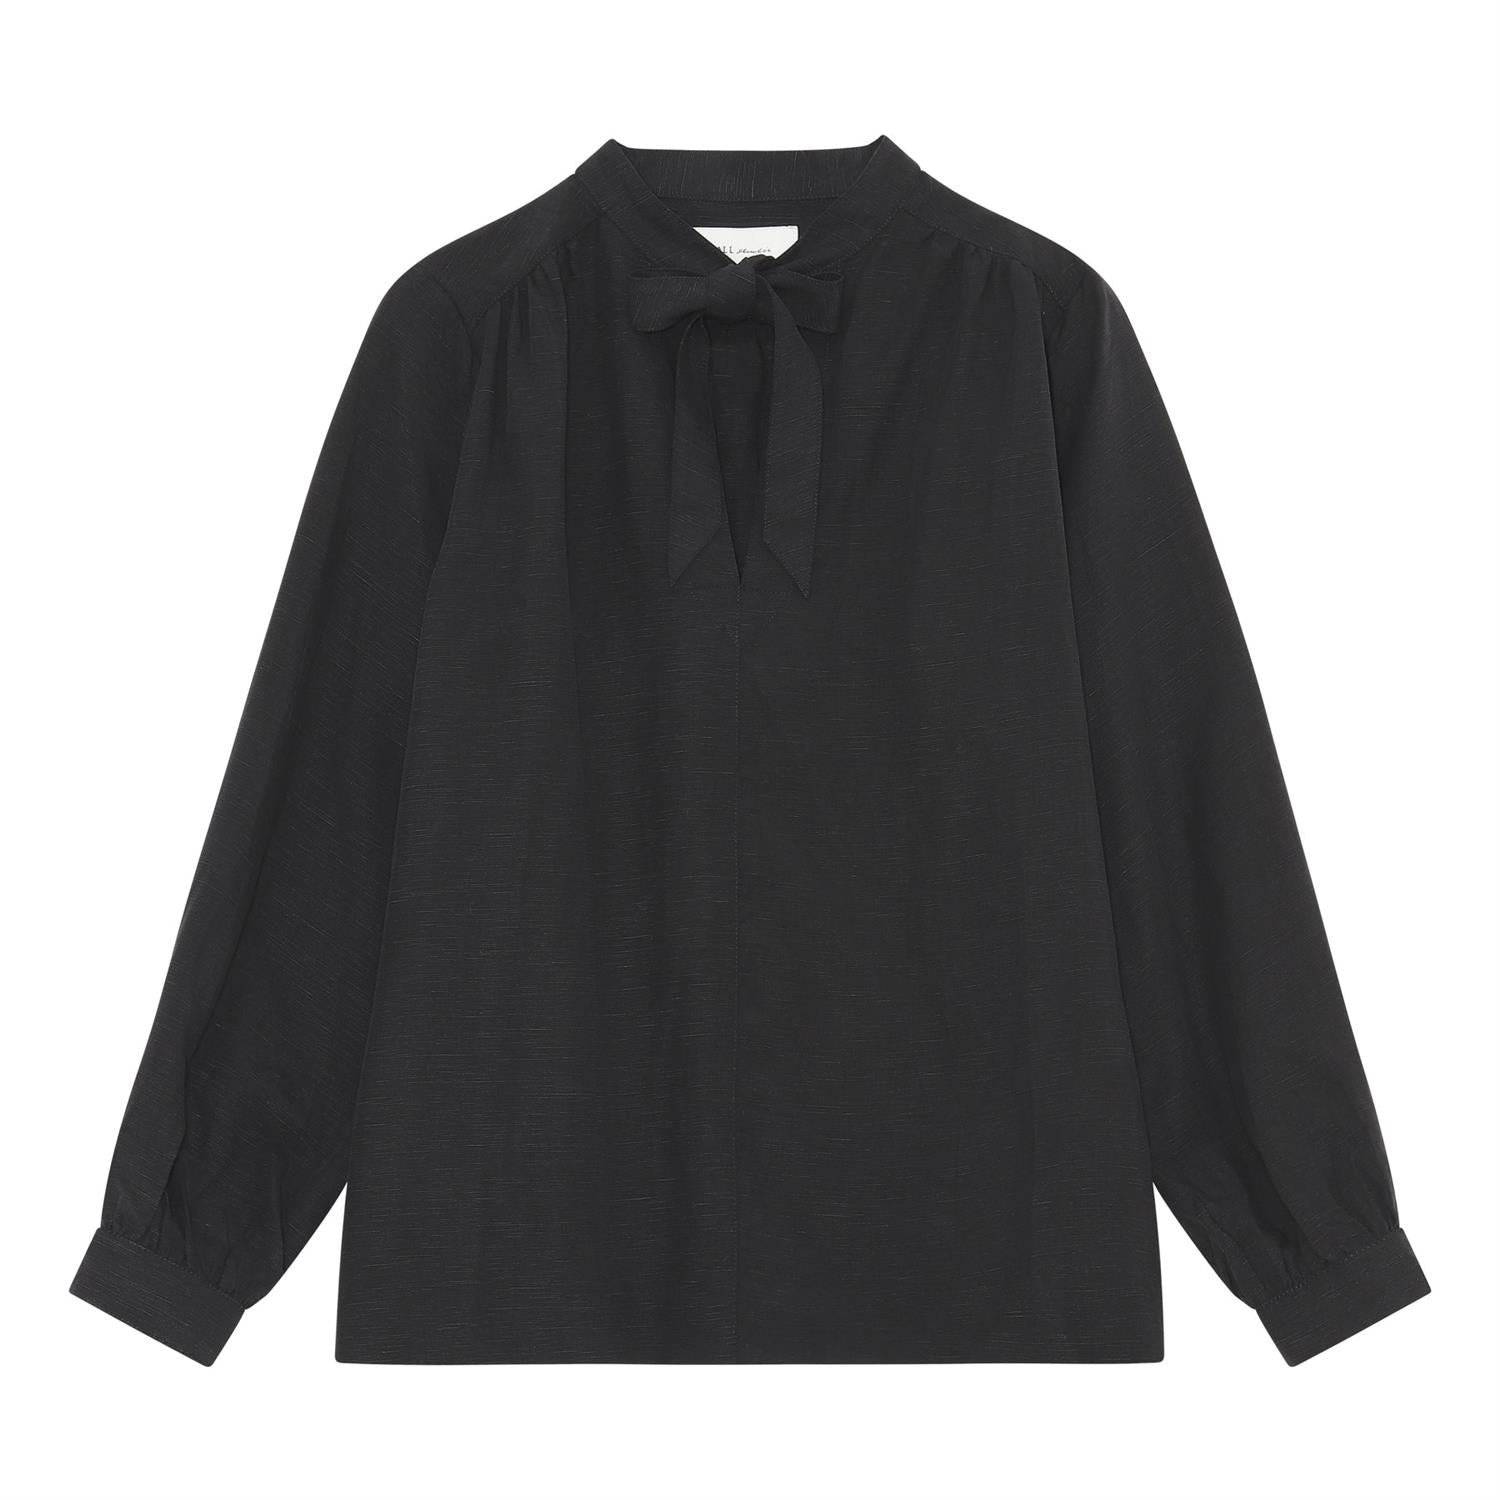 Sille tunic blouse - black